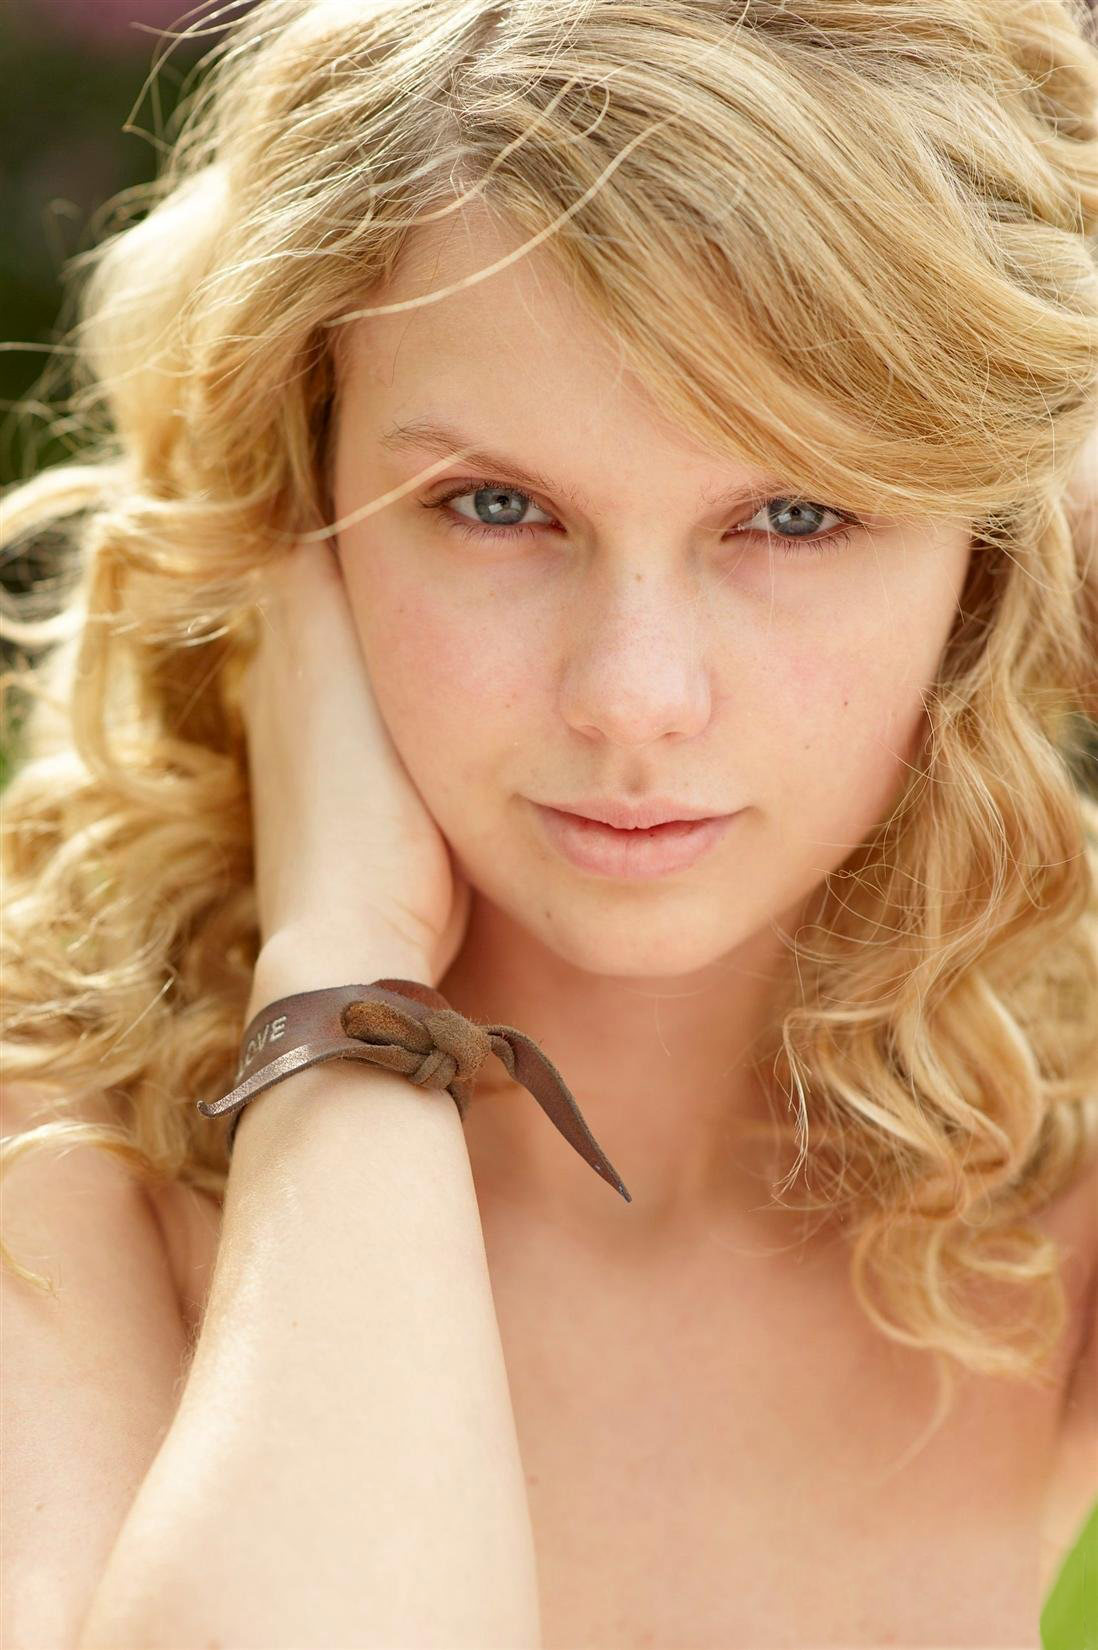 PHOTOS Taylor Swift Without Makeup From 2008 People Shoot